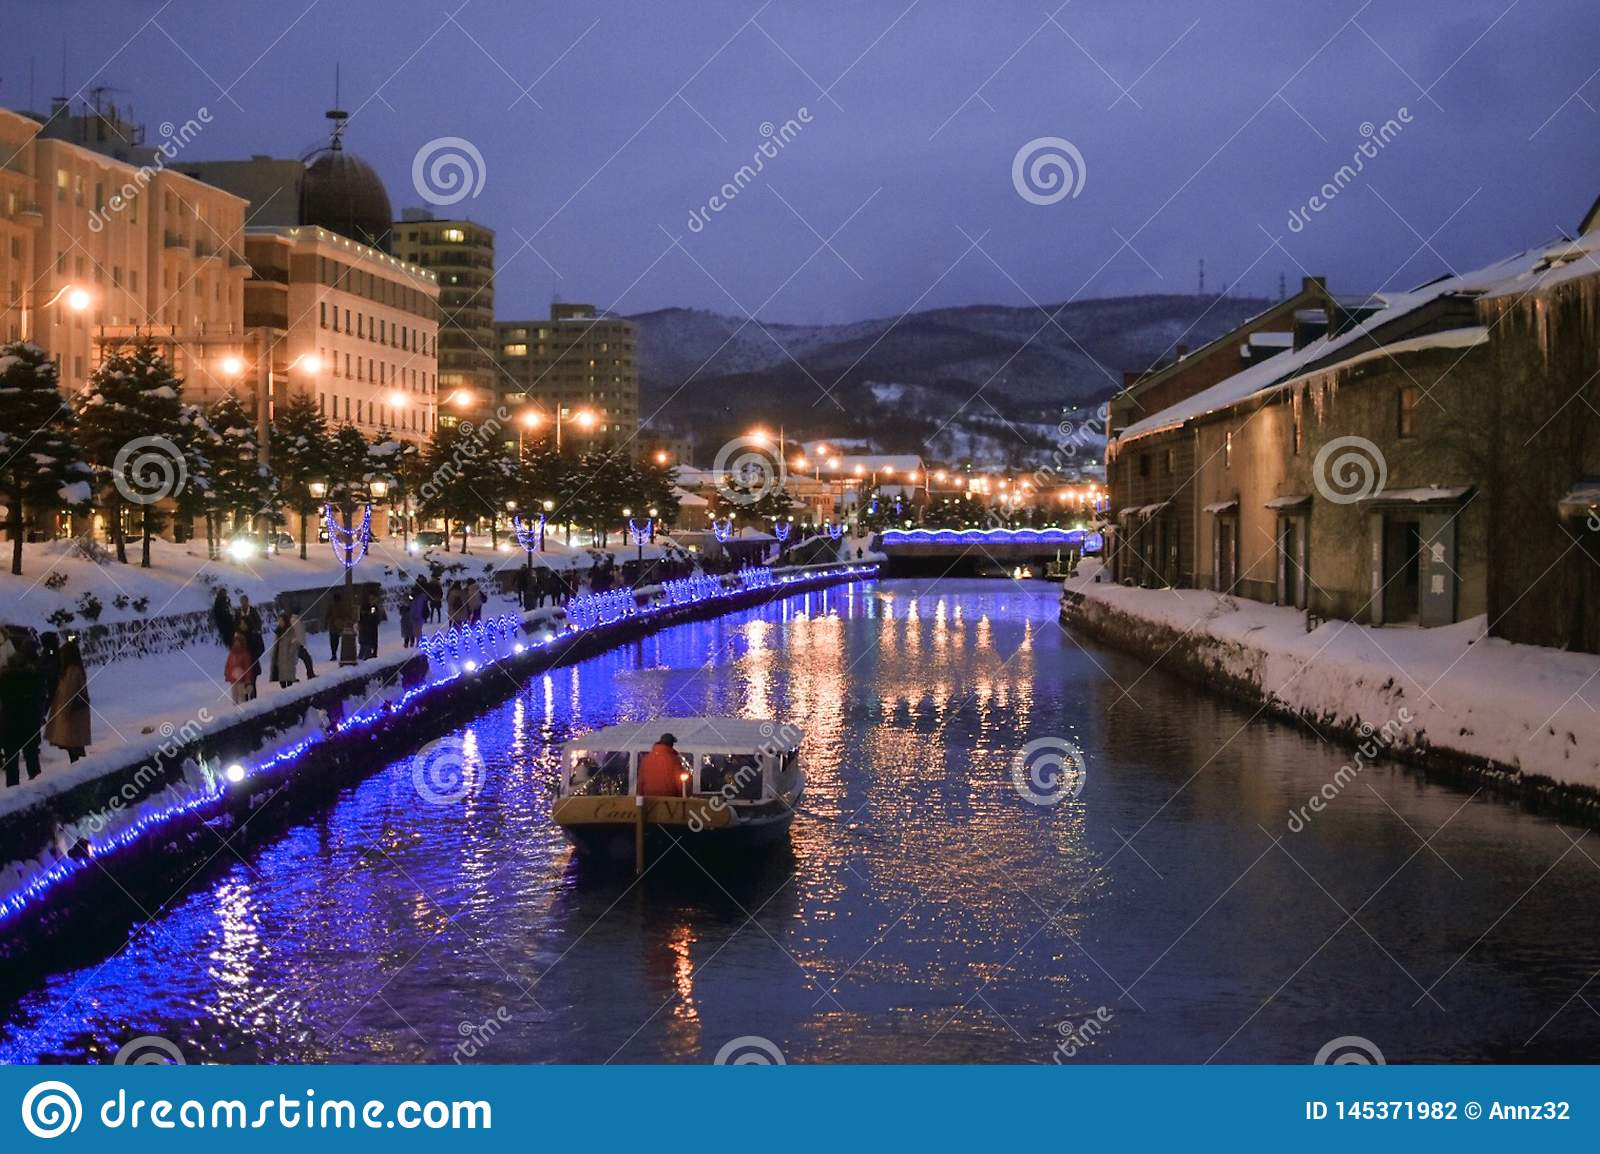 A boat is floating on Otaru Canal